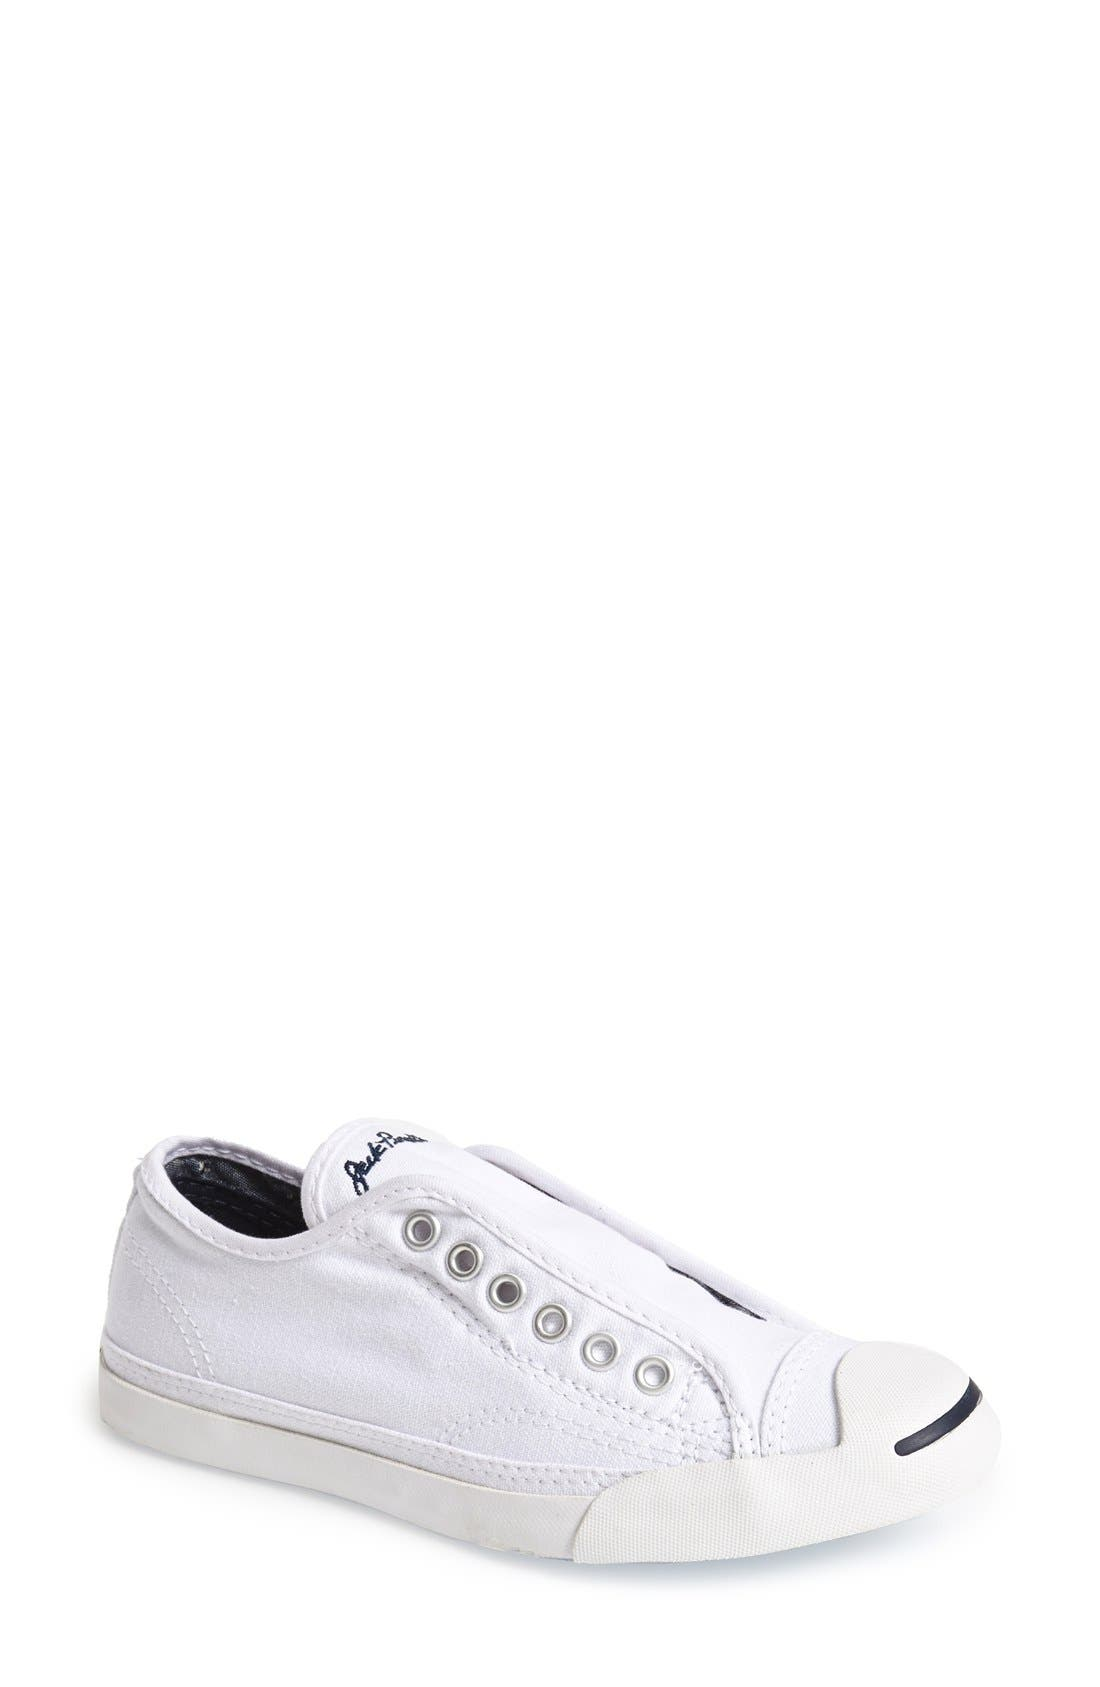 Main Image - Converse 'Jack Purcell - LP' Low Top Sneaker (Women)